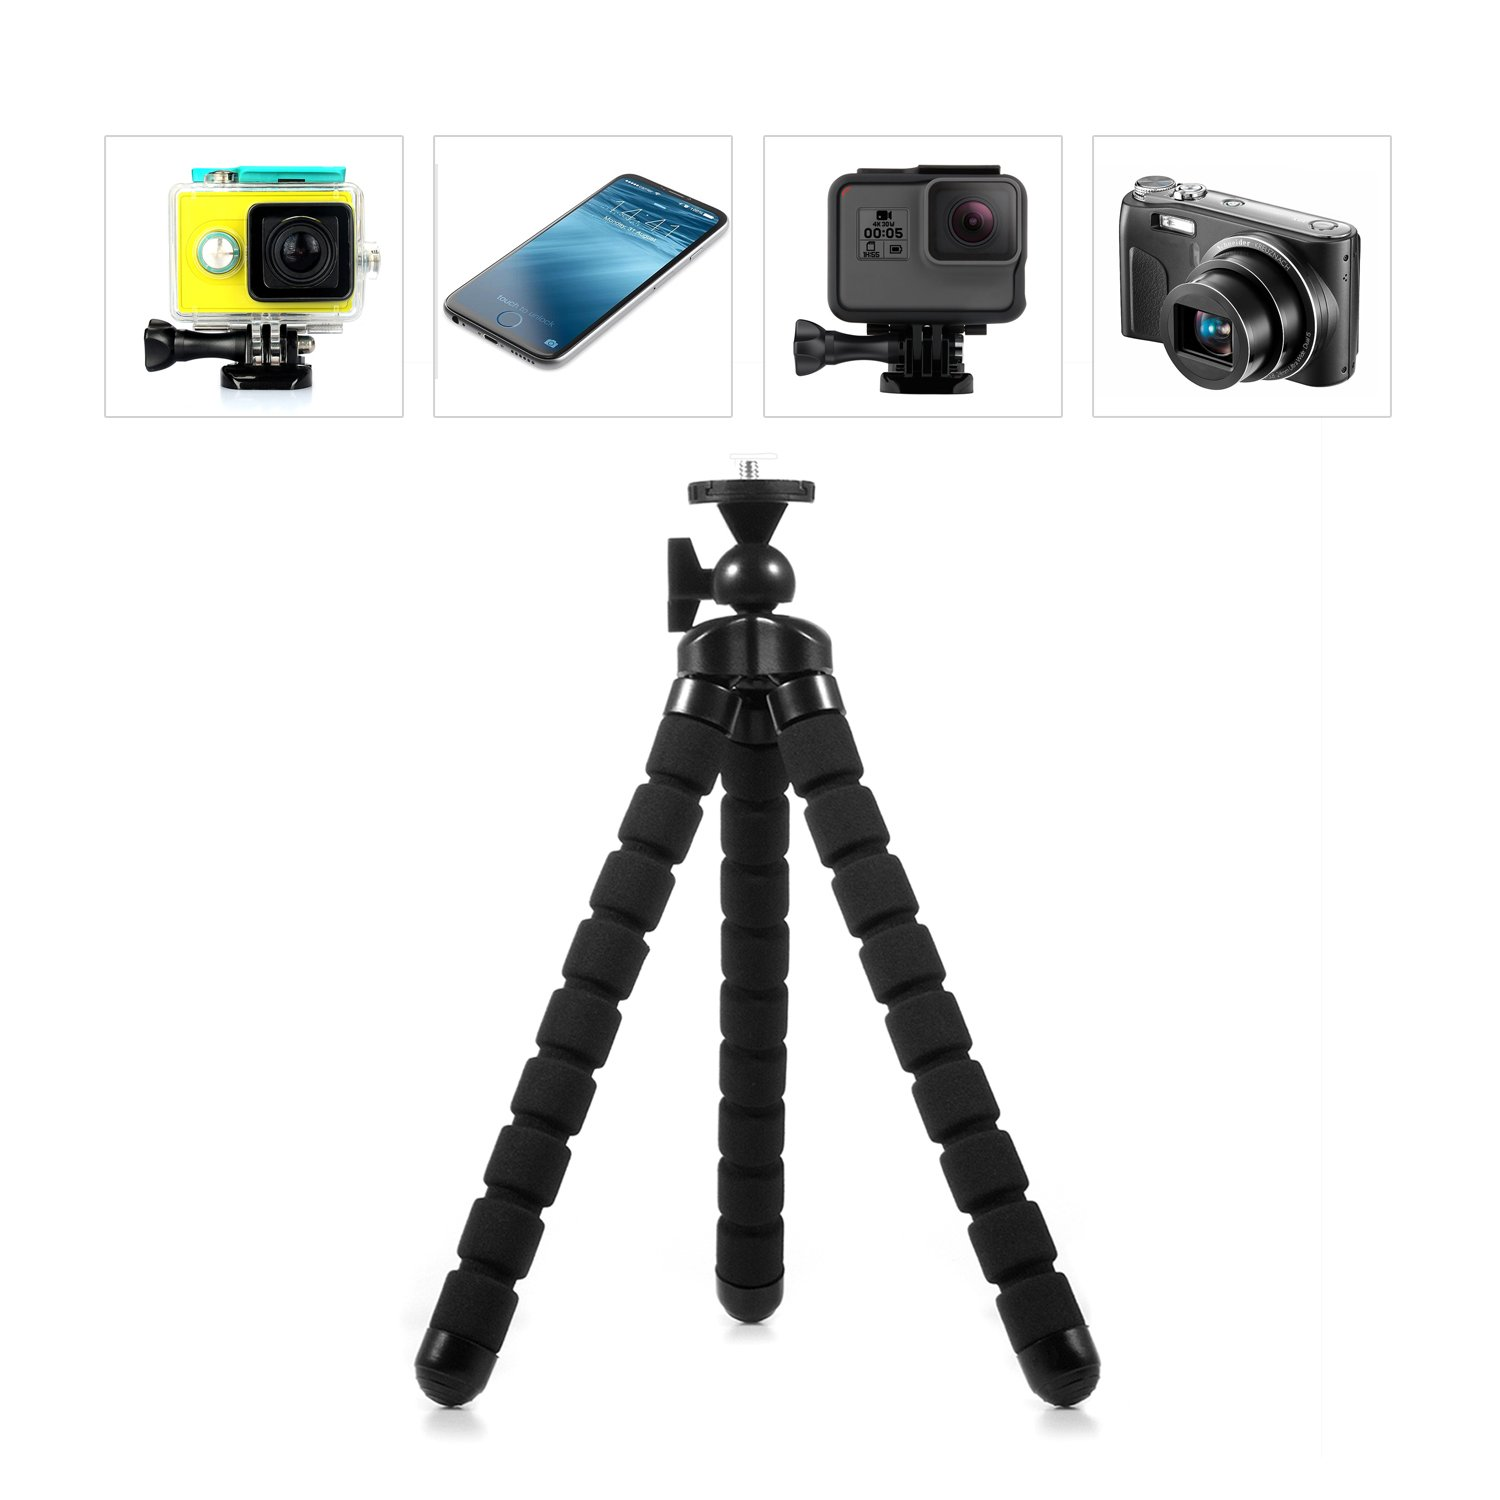 Kupton Octopus Tripod Style Portable and Adjustable Flexible Tripod Stand Holder Mount with Clip for GoPro iPhone /& Android Phone Camera